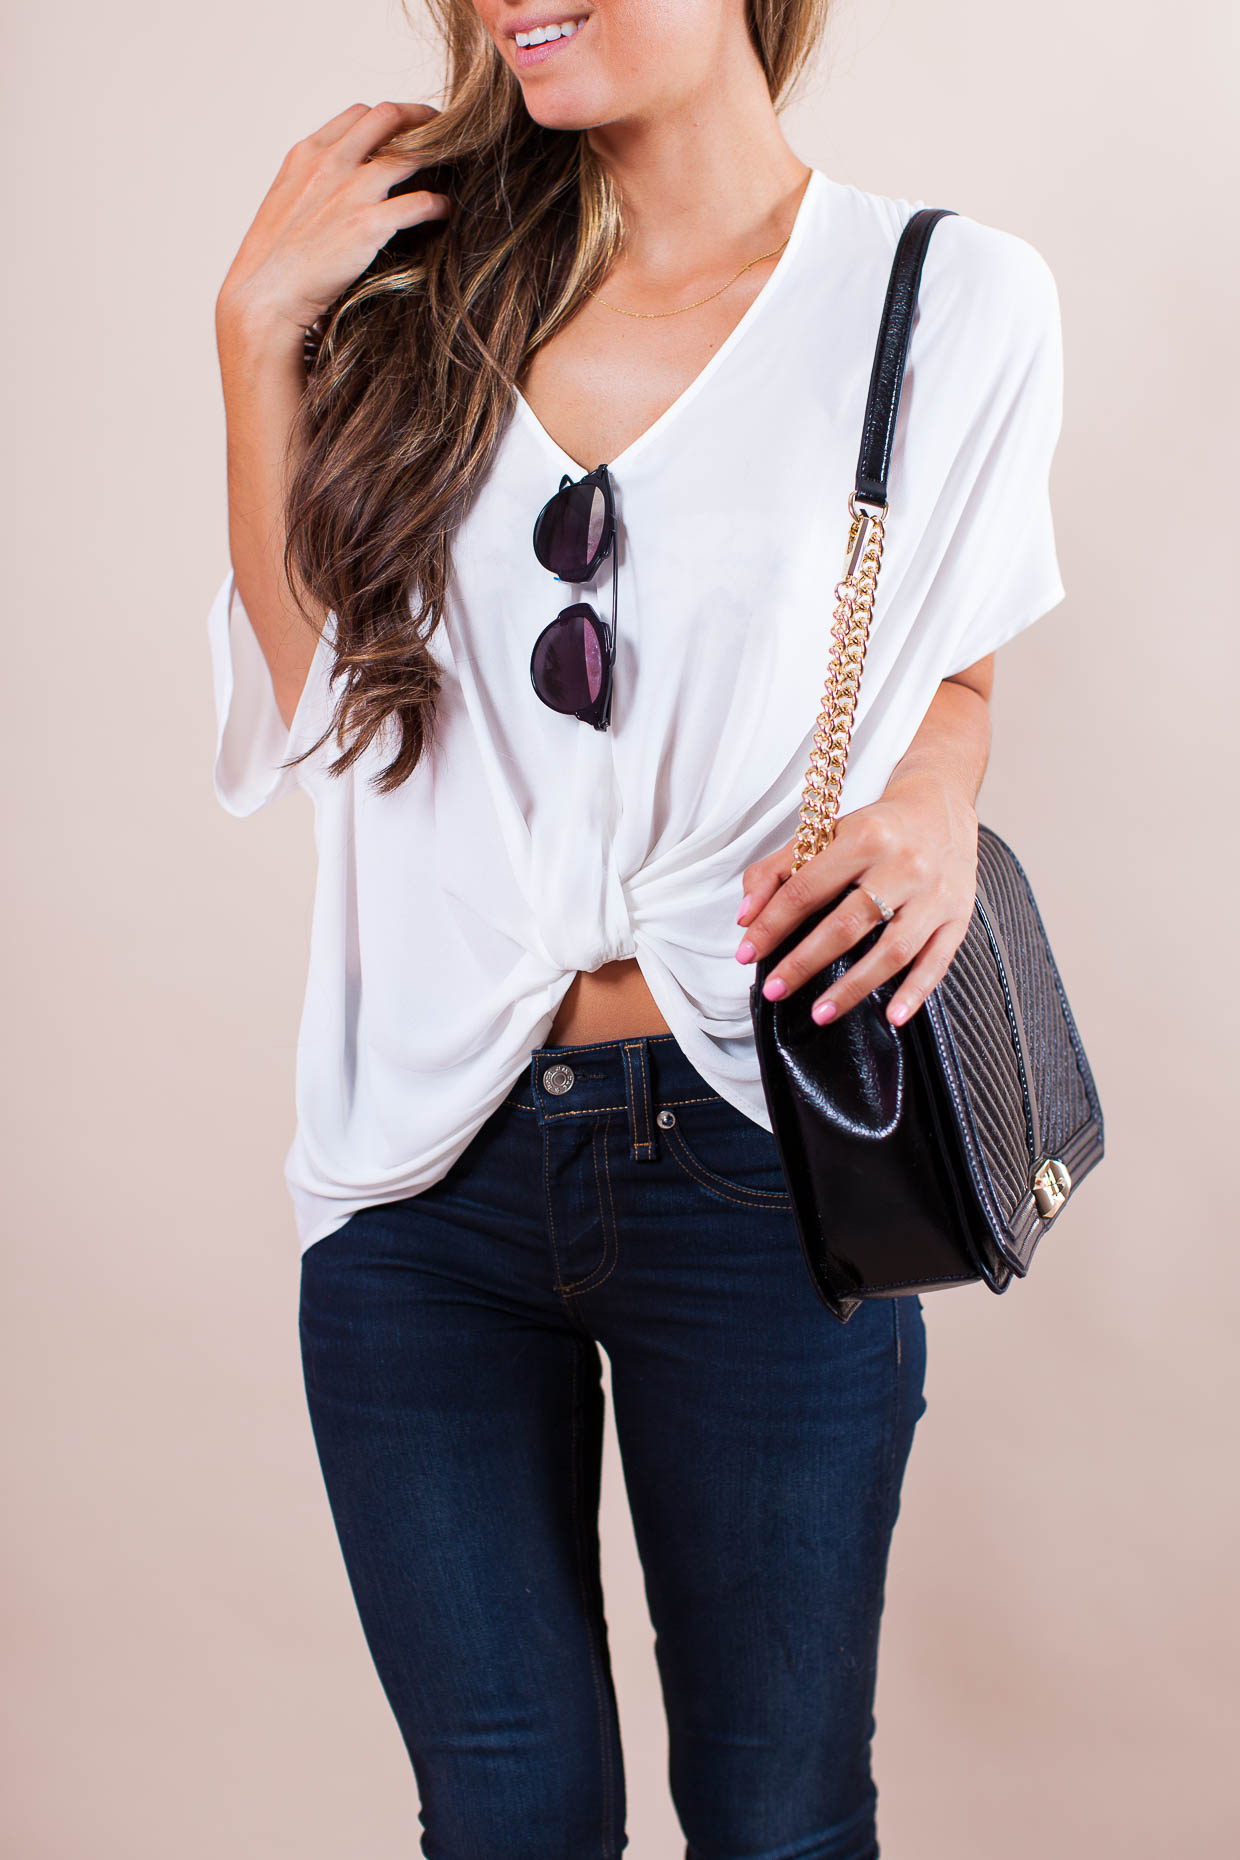 Fashion Blogger The Darling Detail is wearing a Lush Twist Front Woven Top with Rag & Bone Skinny Jeans, Dior 'So Real' 48mm Sunglasses, and a Rebecca Minkoff 'Love Jumbo' Crossbody Bag.